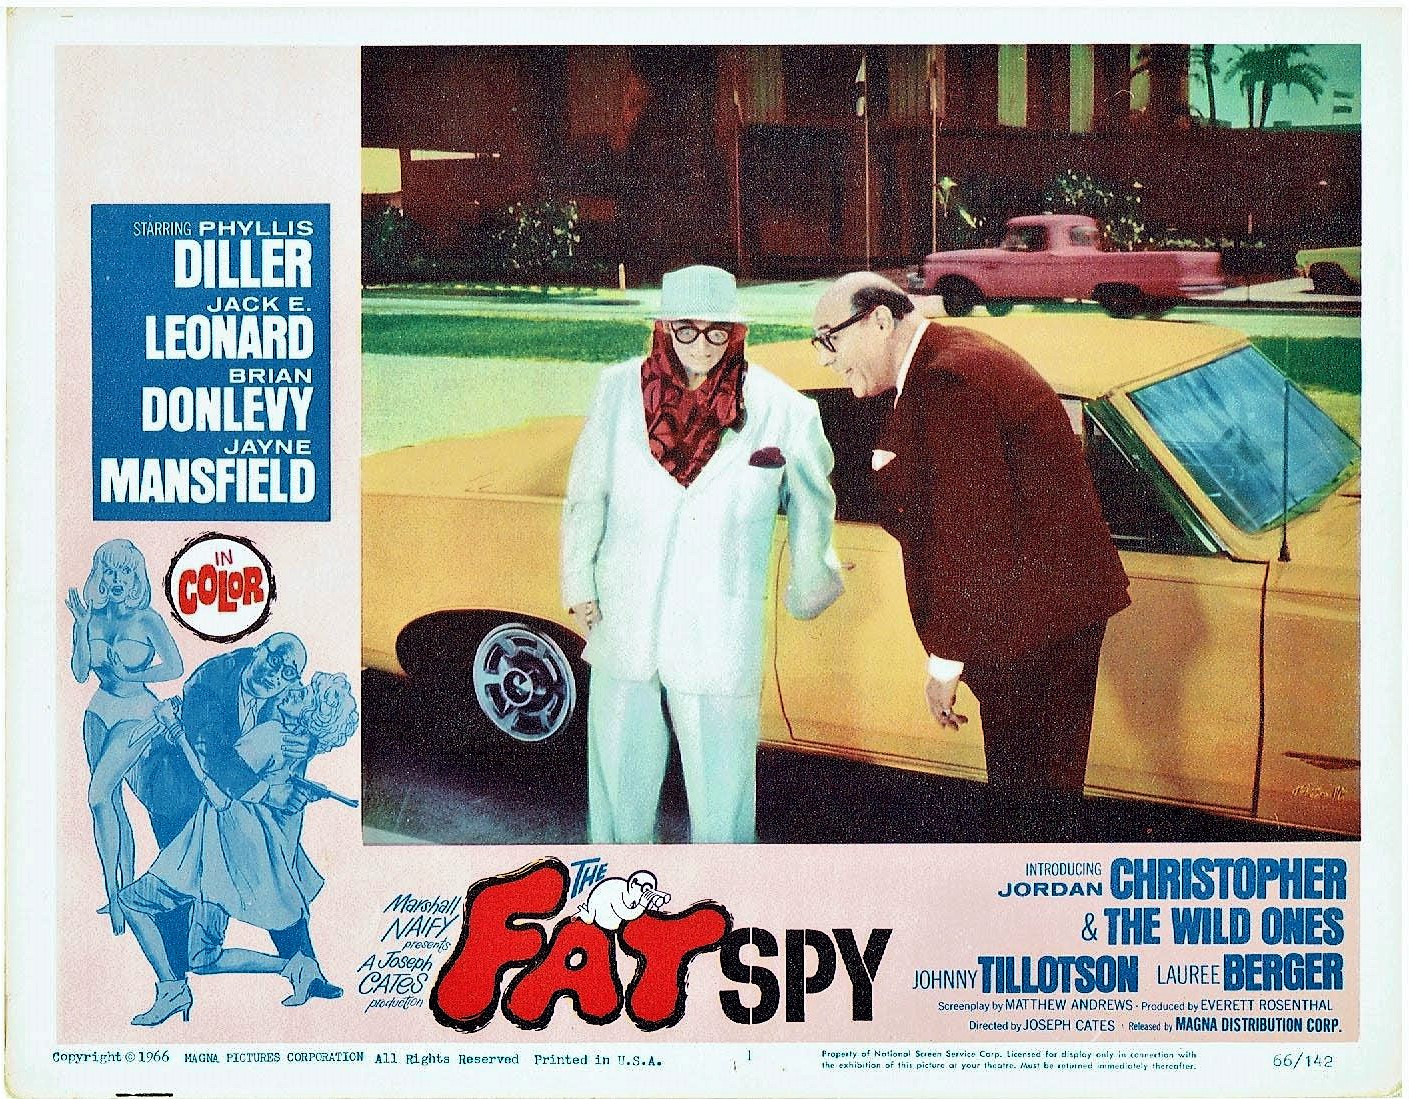 Phyllis Diller, Jack E. Leonard, and Johnny Tillotson in The Fat Spy (1966)